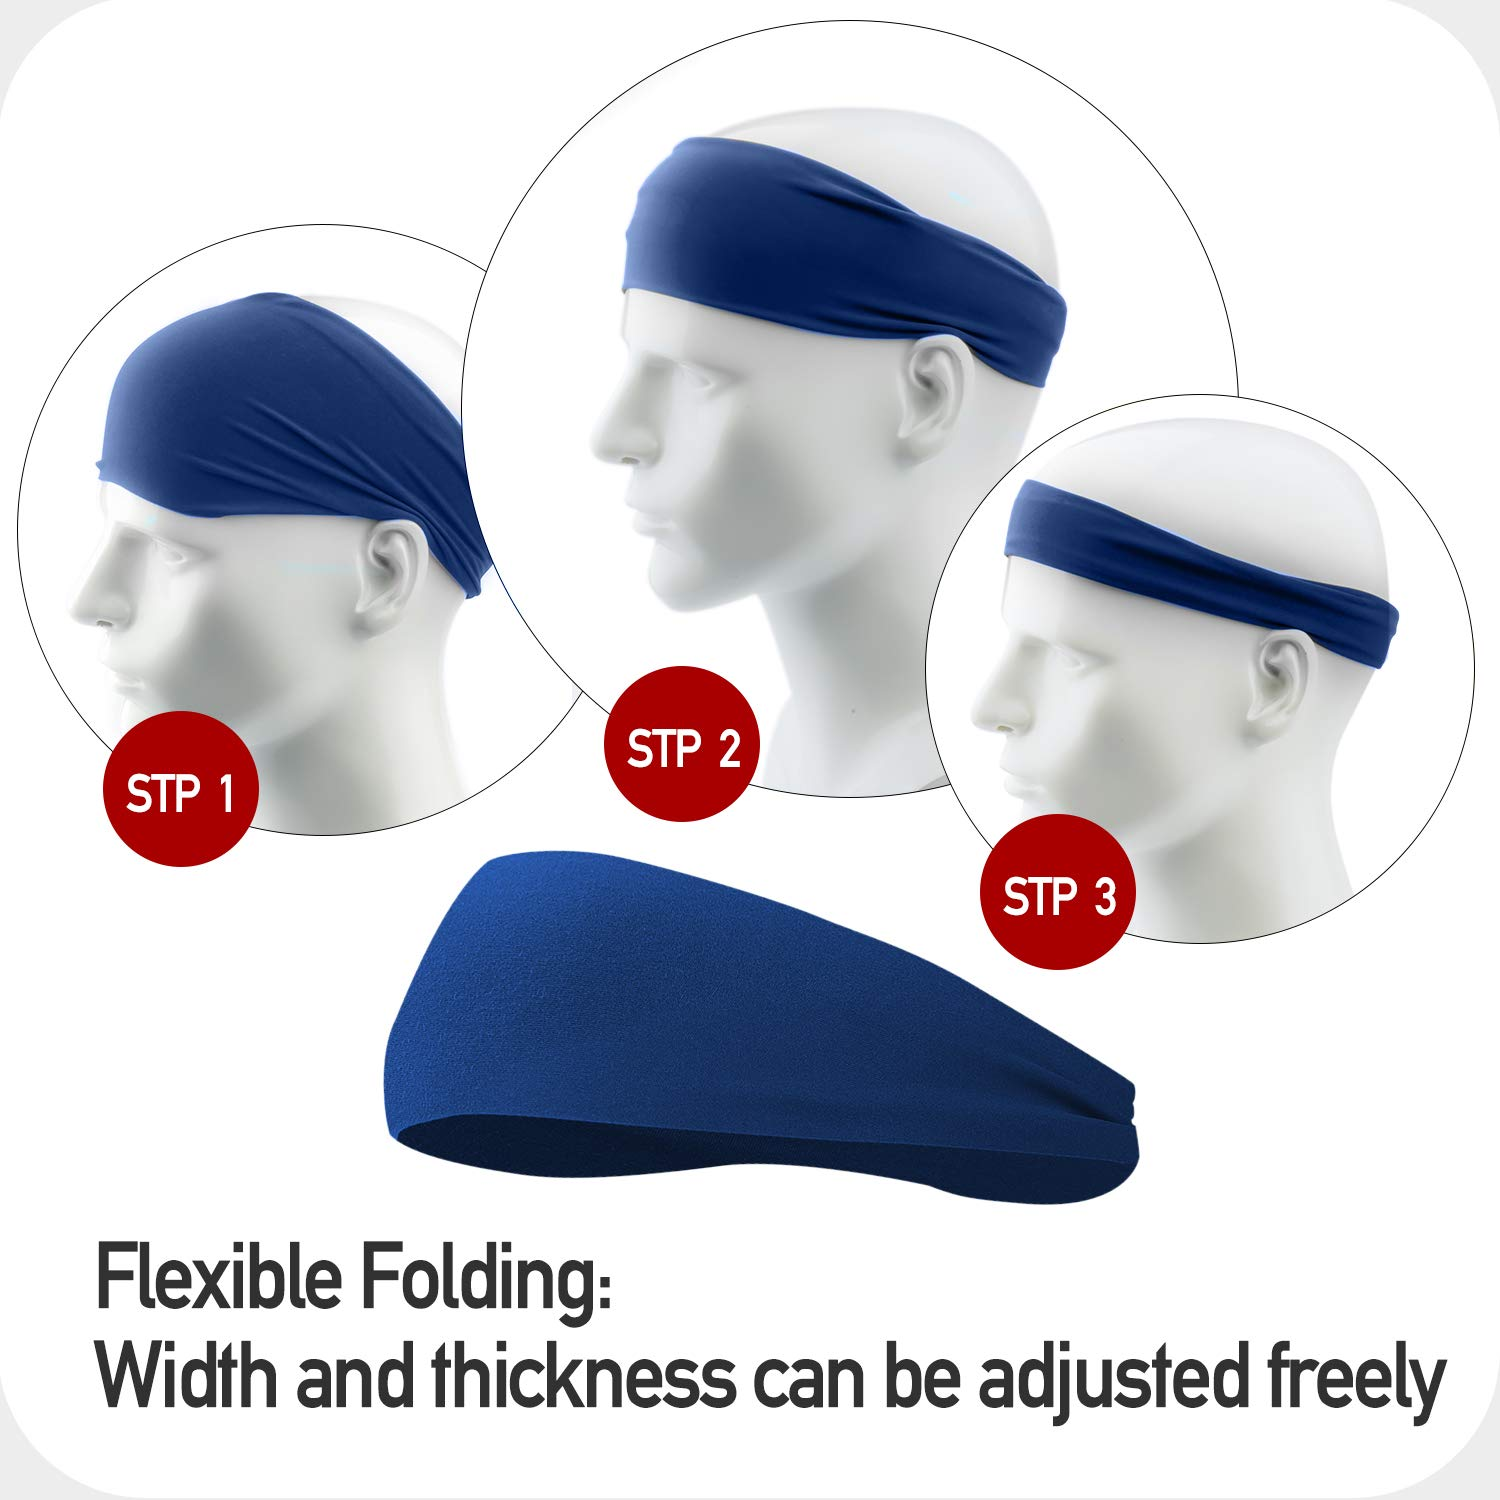 JOEYOUNG Sport Headbands /& Sweatbands for Men and Women Cycling 4 Pack Workout Headbands Hairbands for Yoga Running Crossfit Breathable /& Non-Slip /& Performance Stretch Basketball